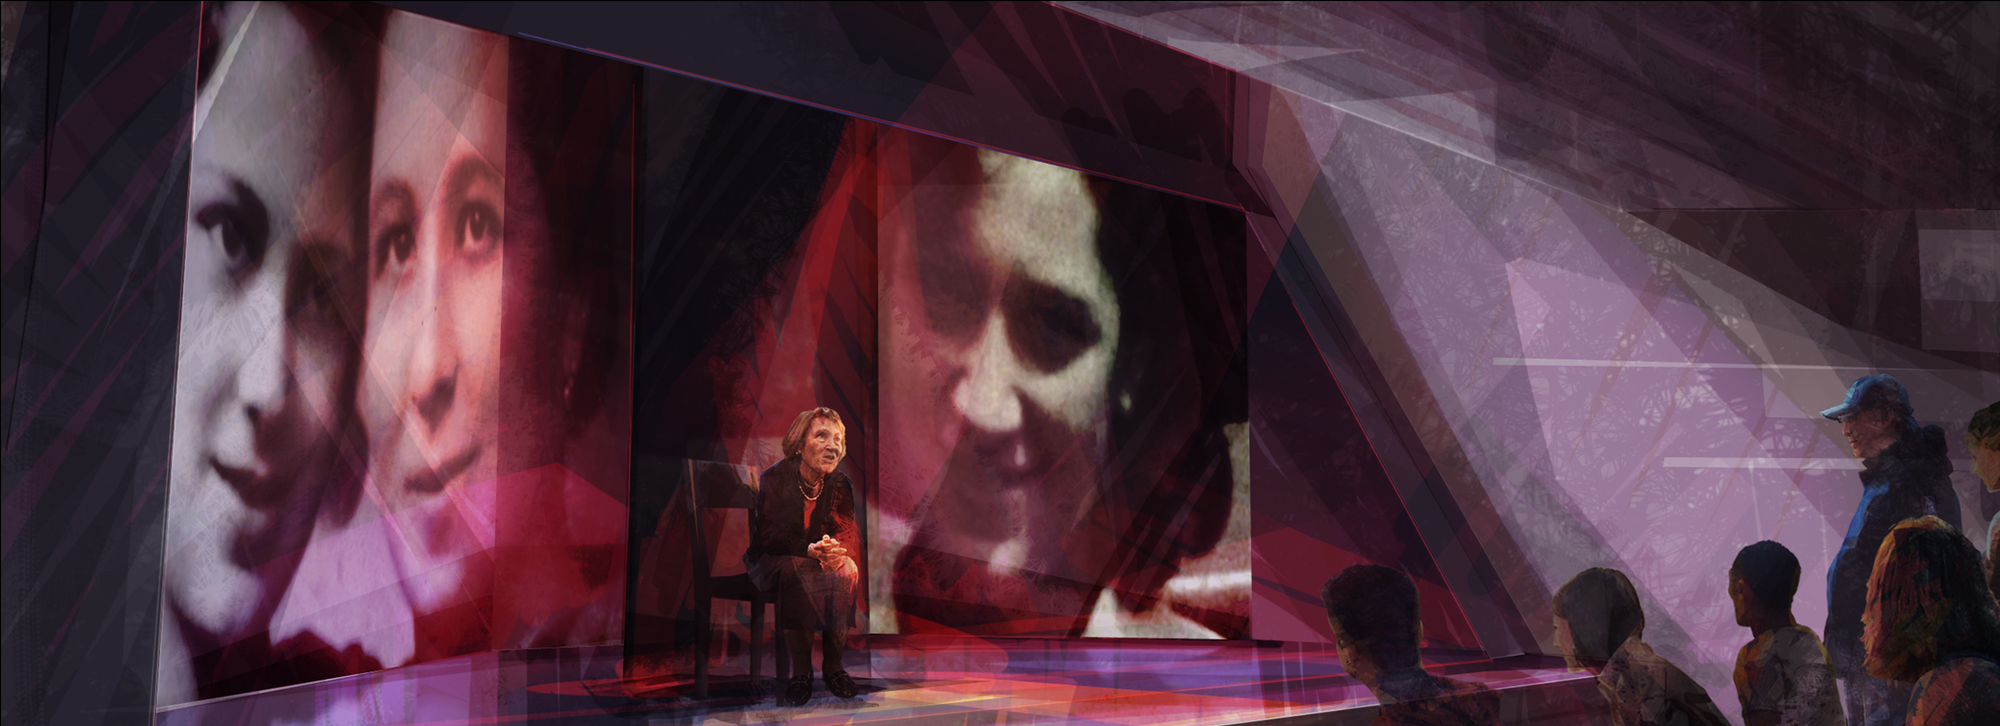 Rendering: A hologram of a Holocaust survivor speaks to museum visitors.